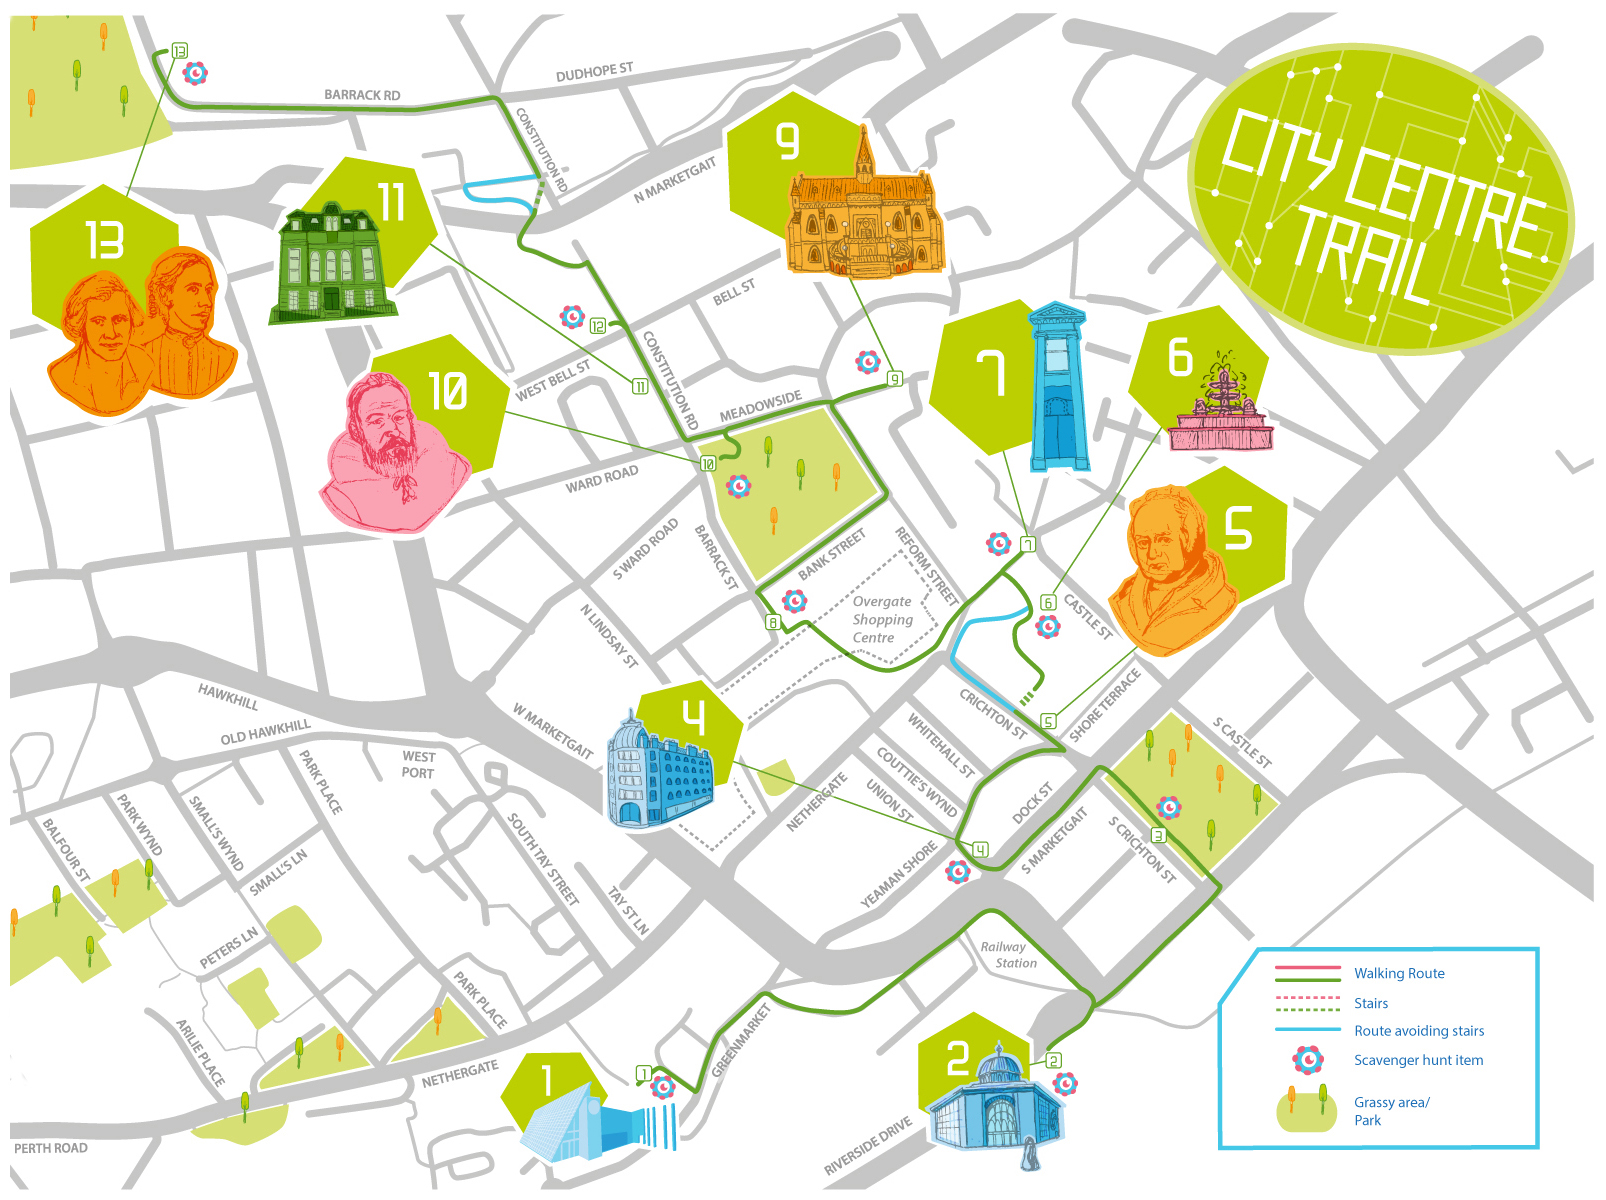 City Centre Map with walking tour route marked